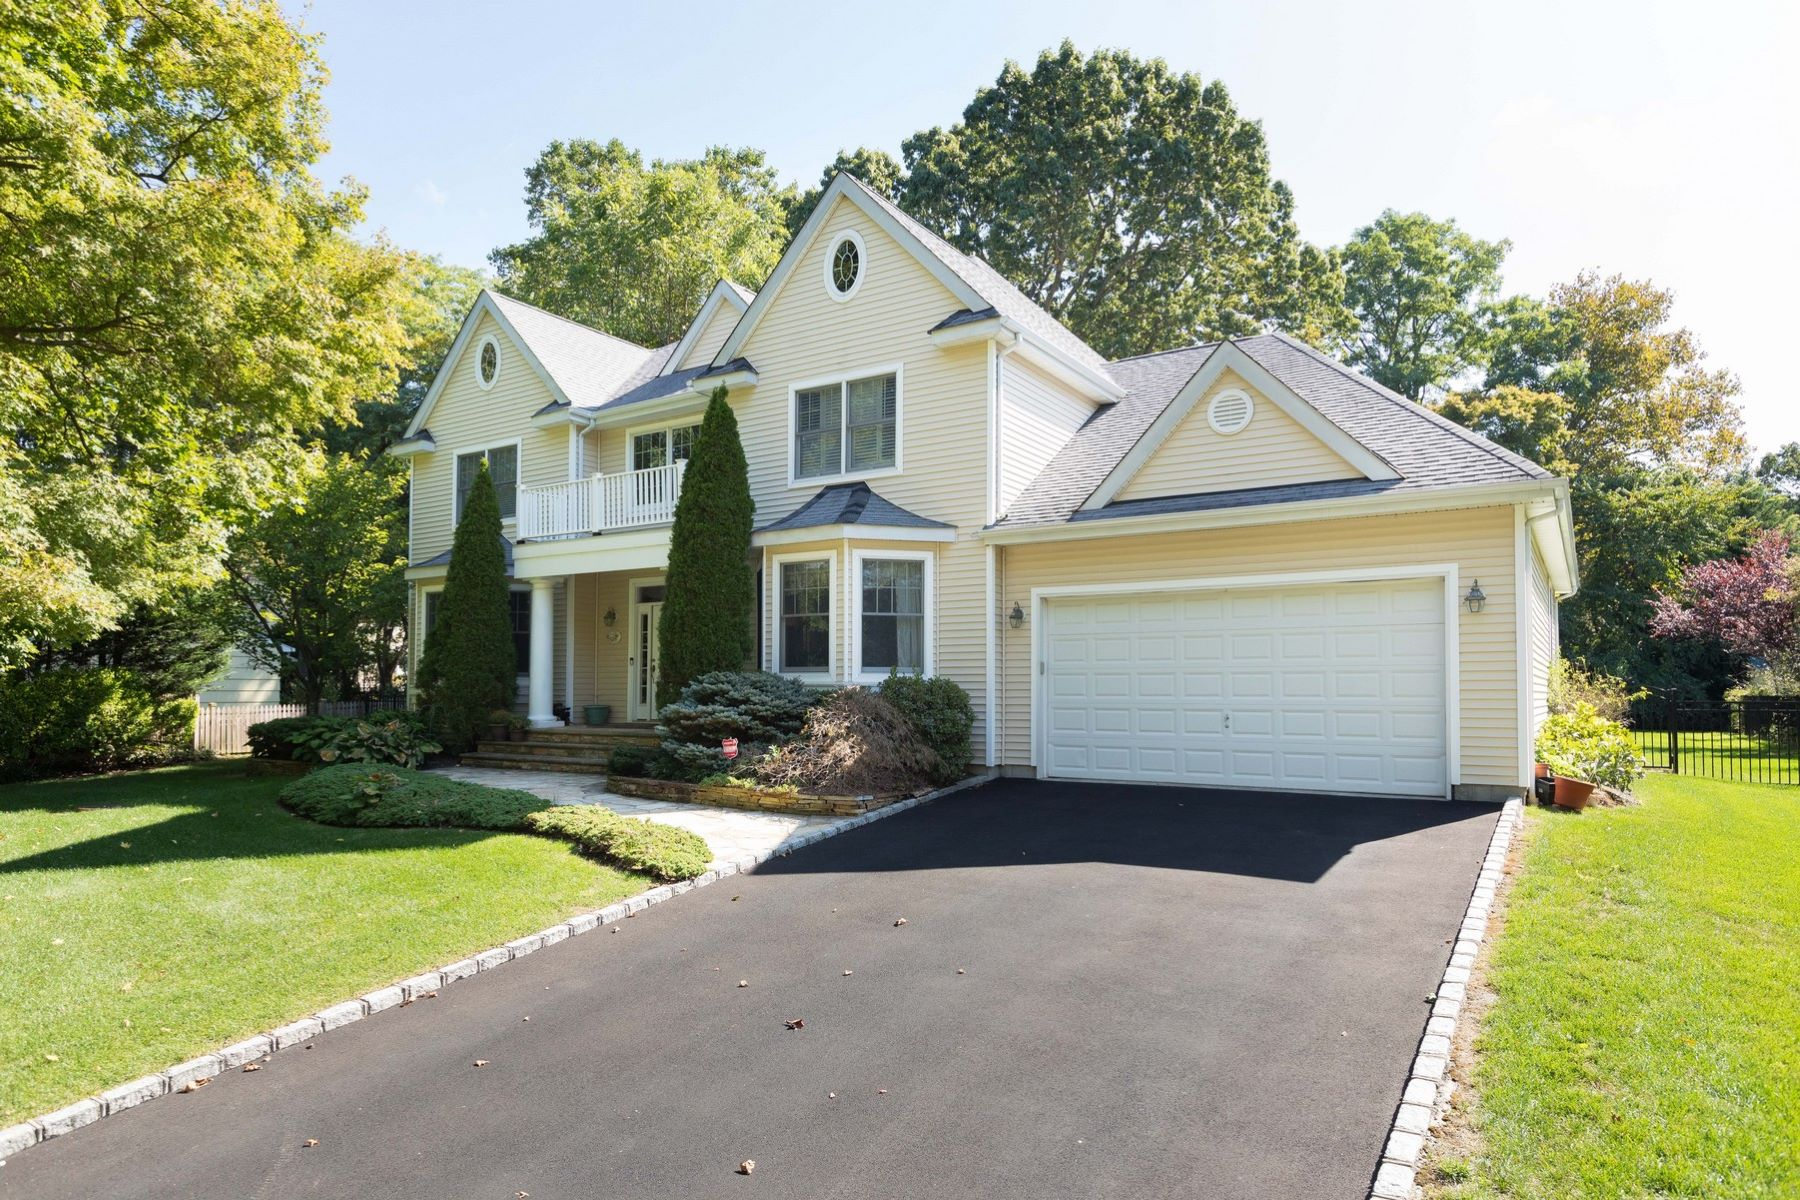 Single Family Homes for Active at Huntington 9 Grace Ln Huntington, New York 11743 United States